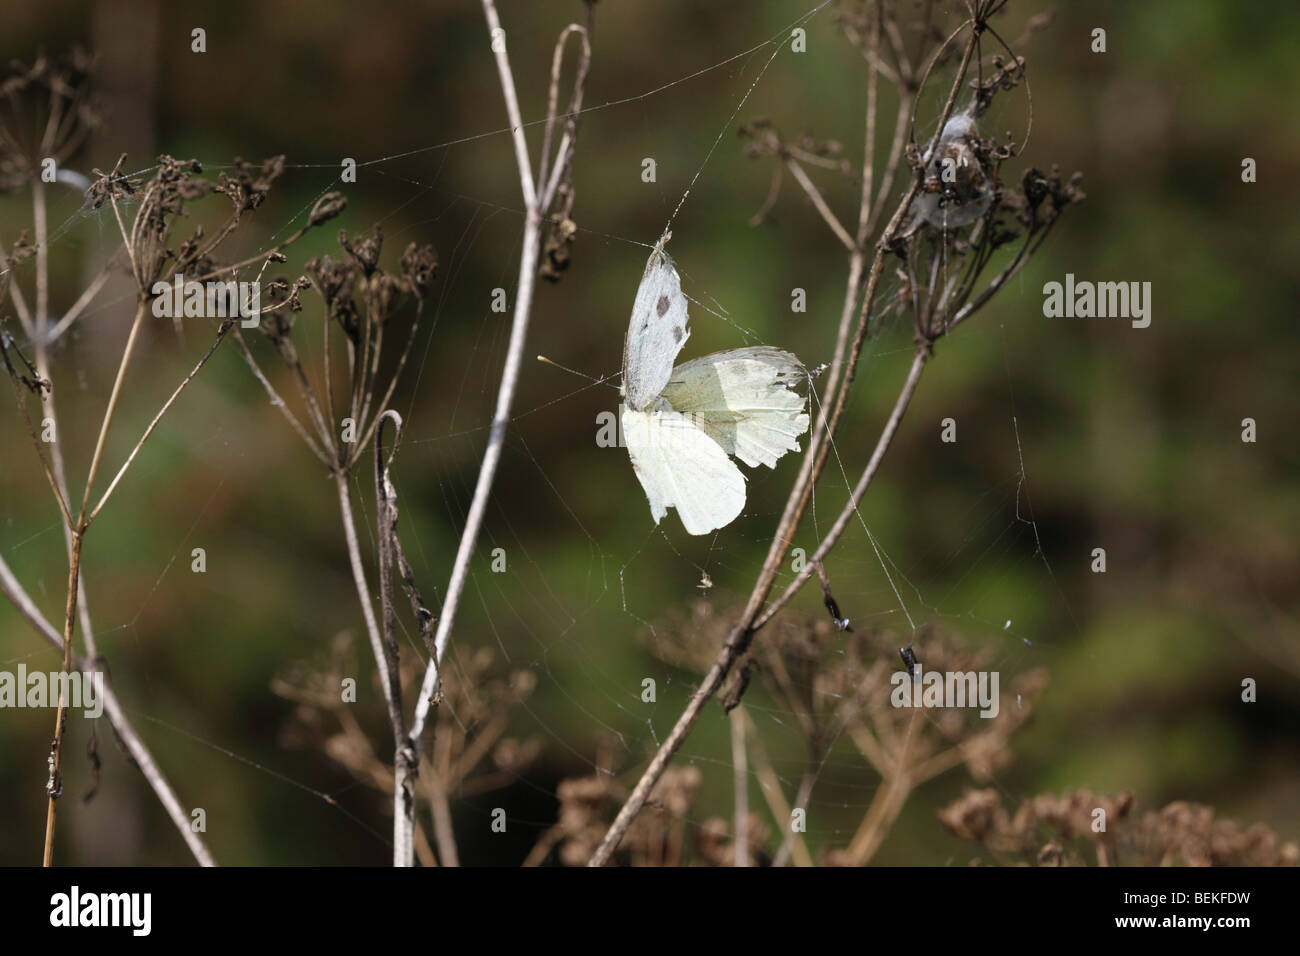 Large white butterfly caught in spiders web - Stock Image